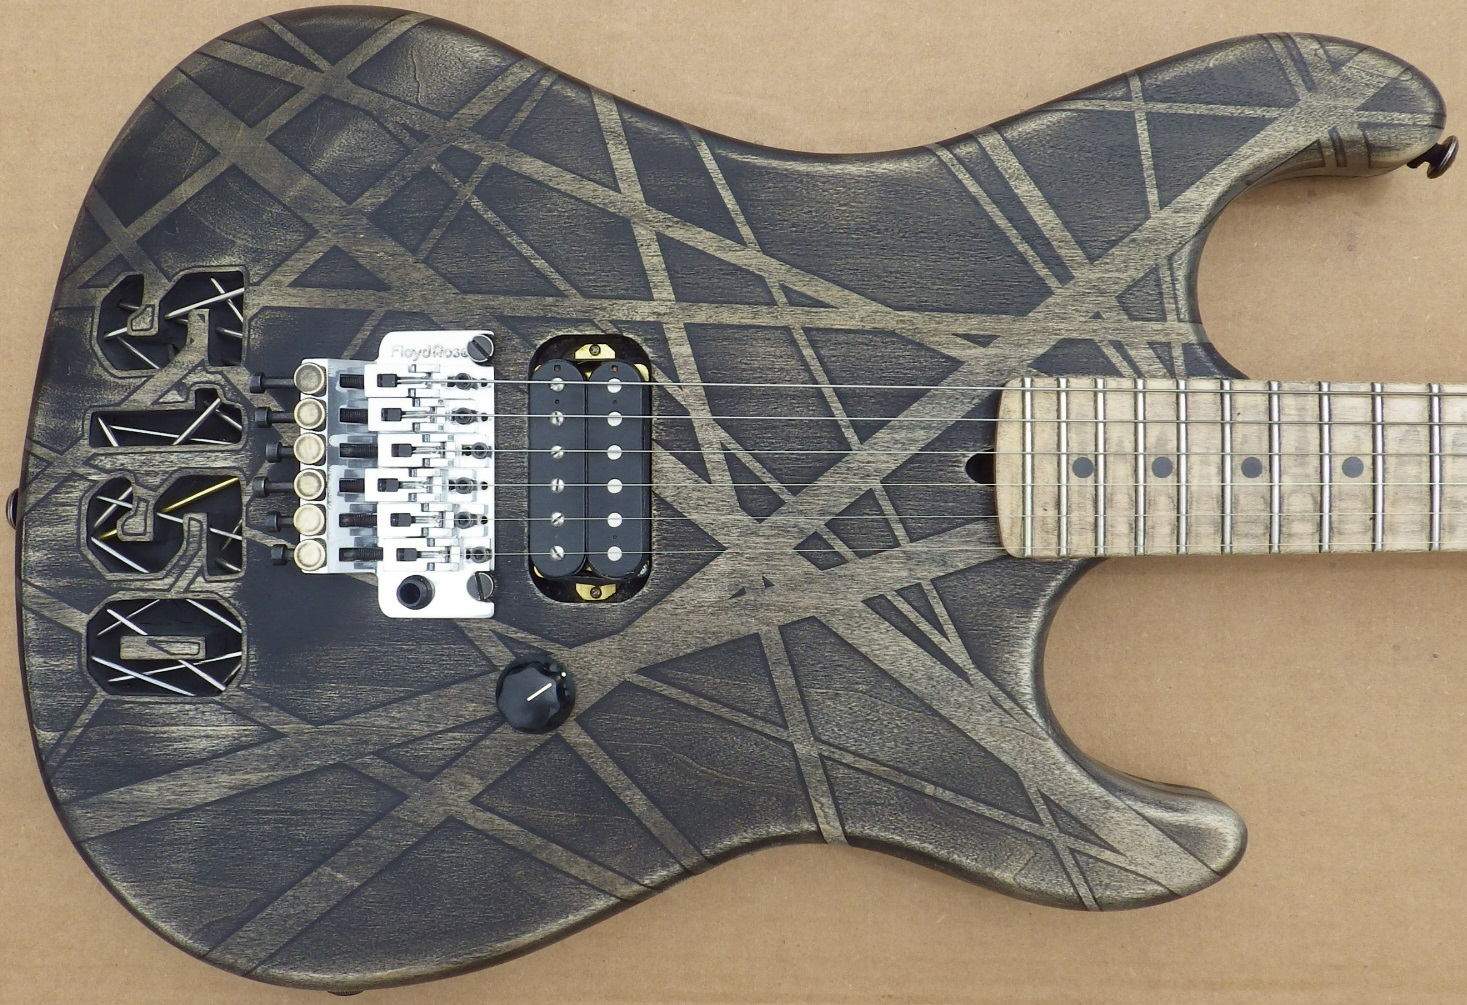 Mean Street Guitars Industrial 50 1 50 Pipeline Prototype  black pic 2.jpg